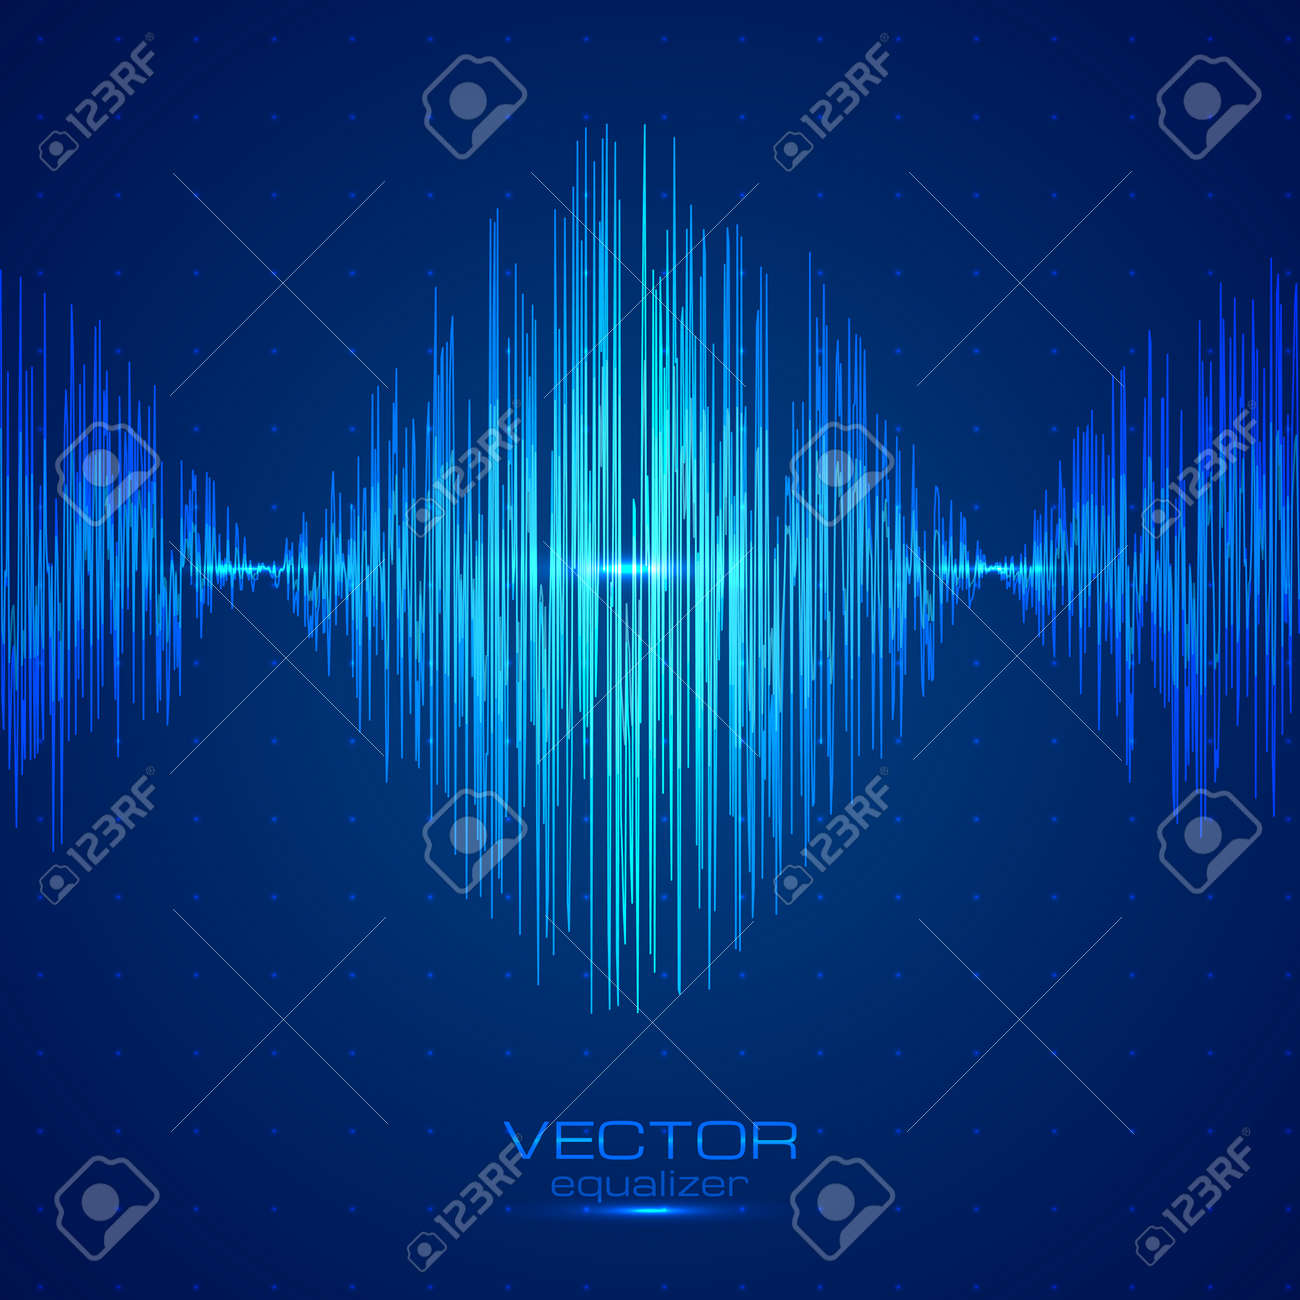 blue vector techno sound wave abstract equalizer royalty free